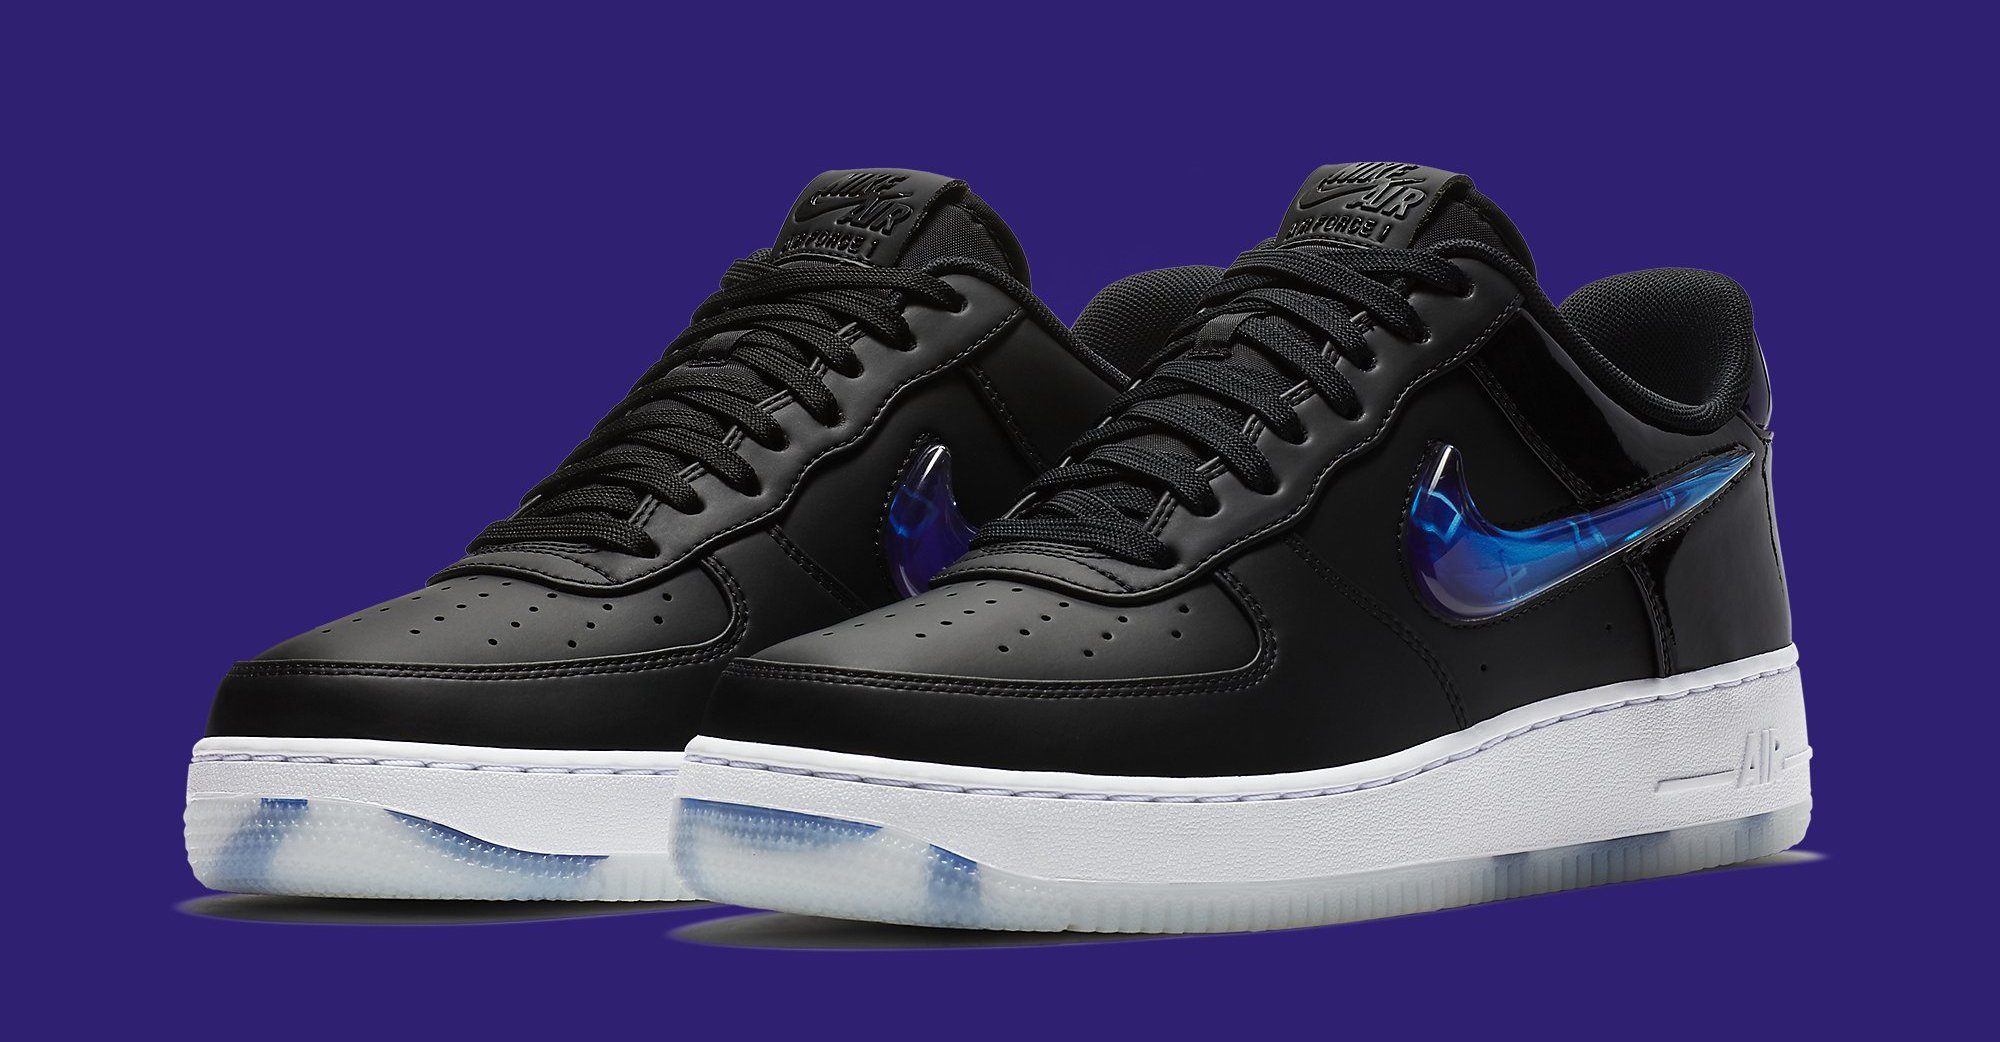 sneakers for cheap 30db5 cd6c1 Playstation x Nike Air Force 1 Low BQ3634-001 Sneaker Release Date   Sole  Collector